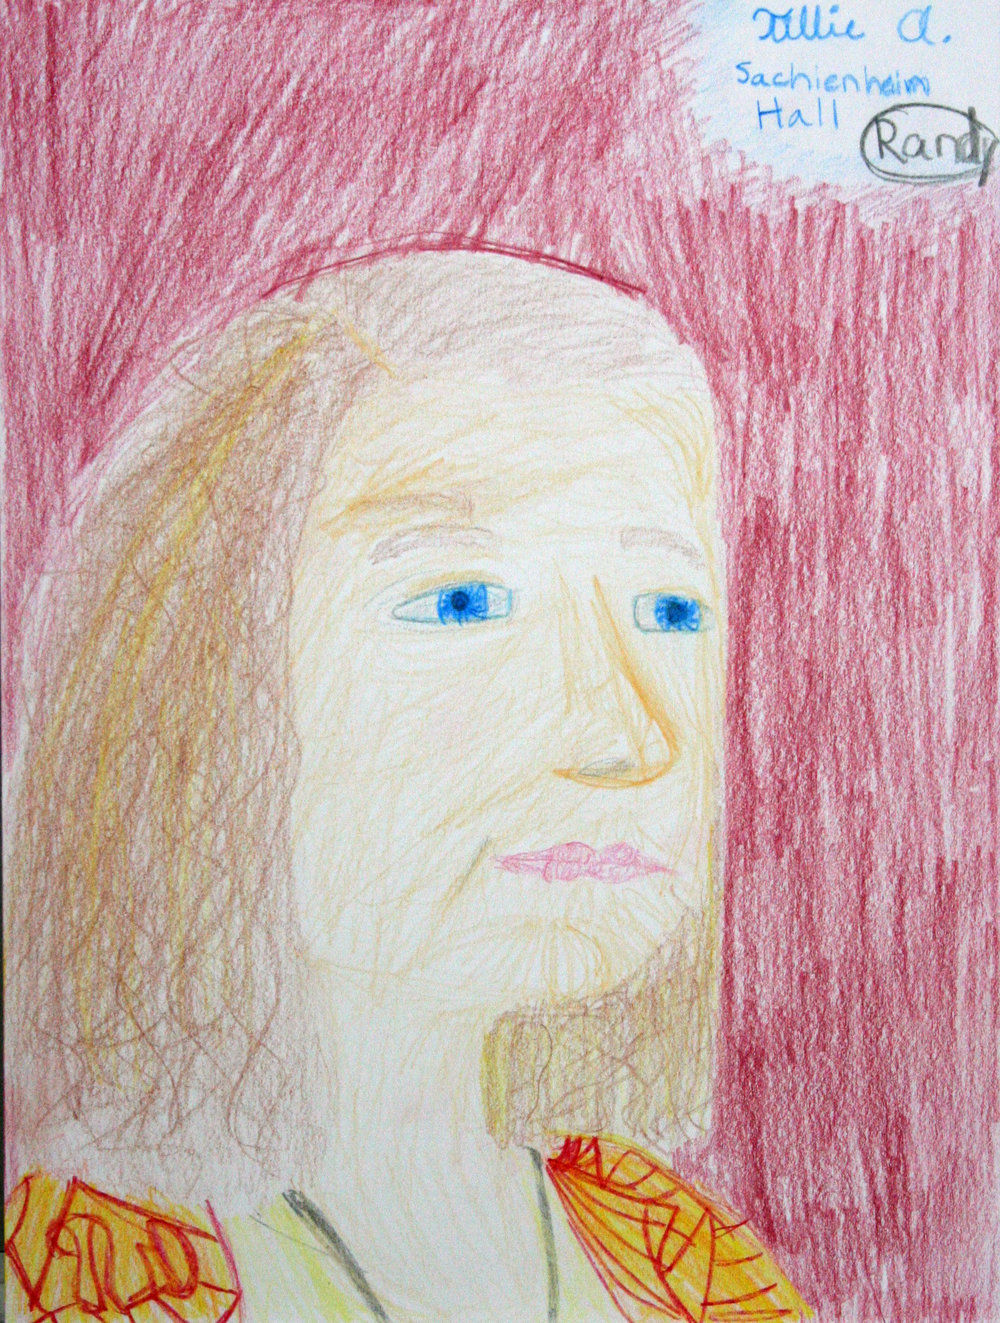 Tillie Averre did this crayon drawing.